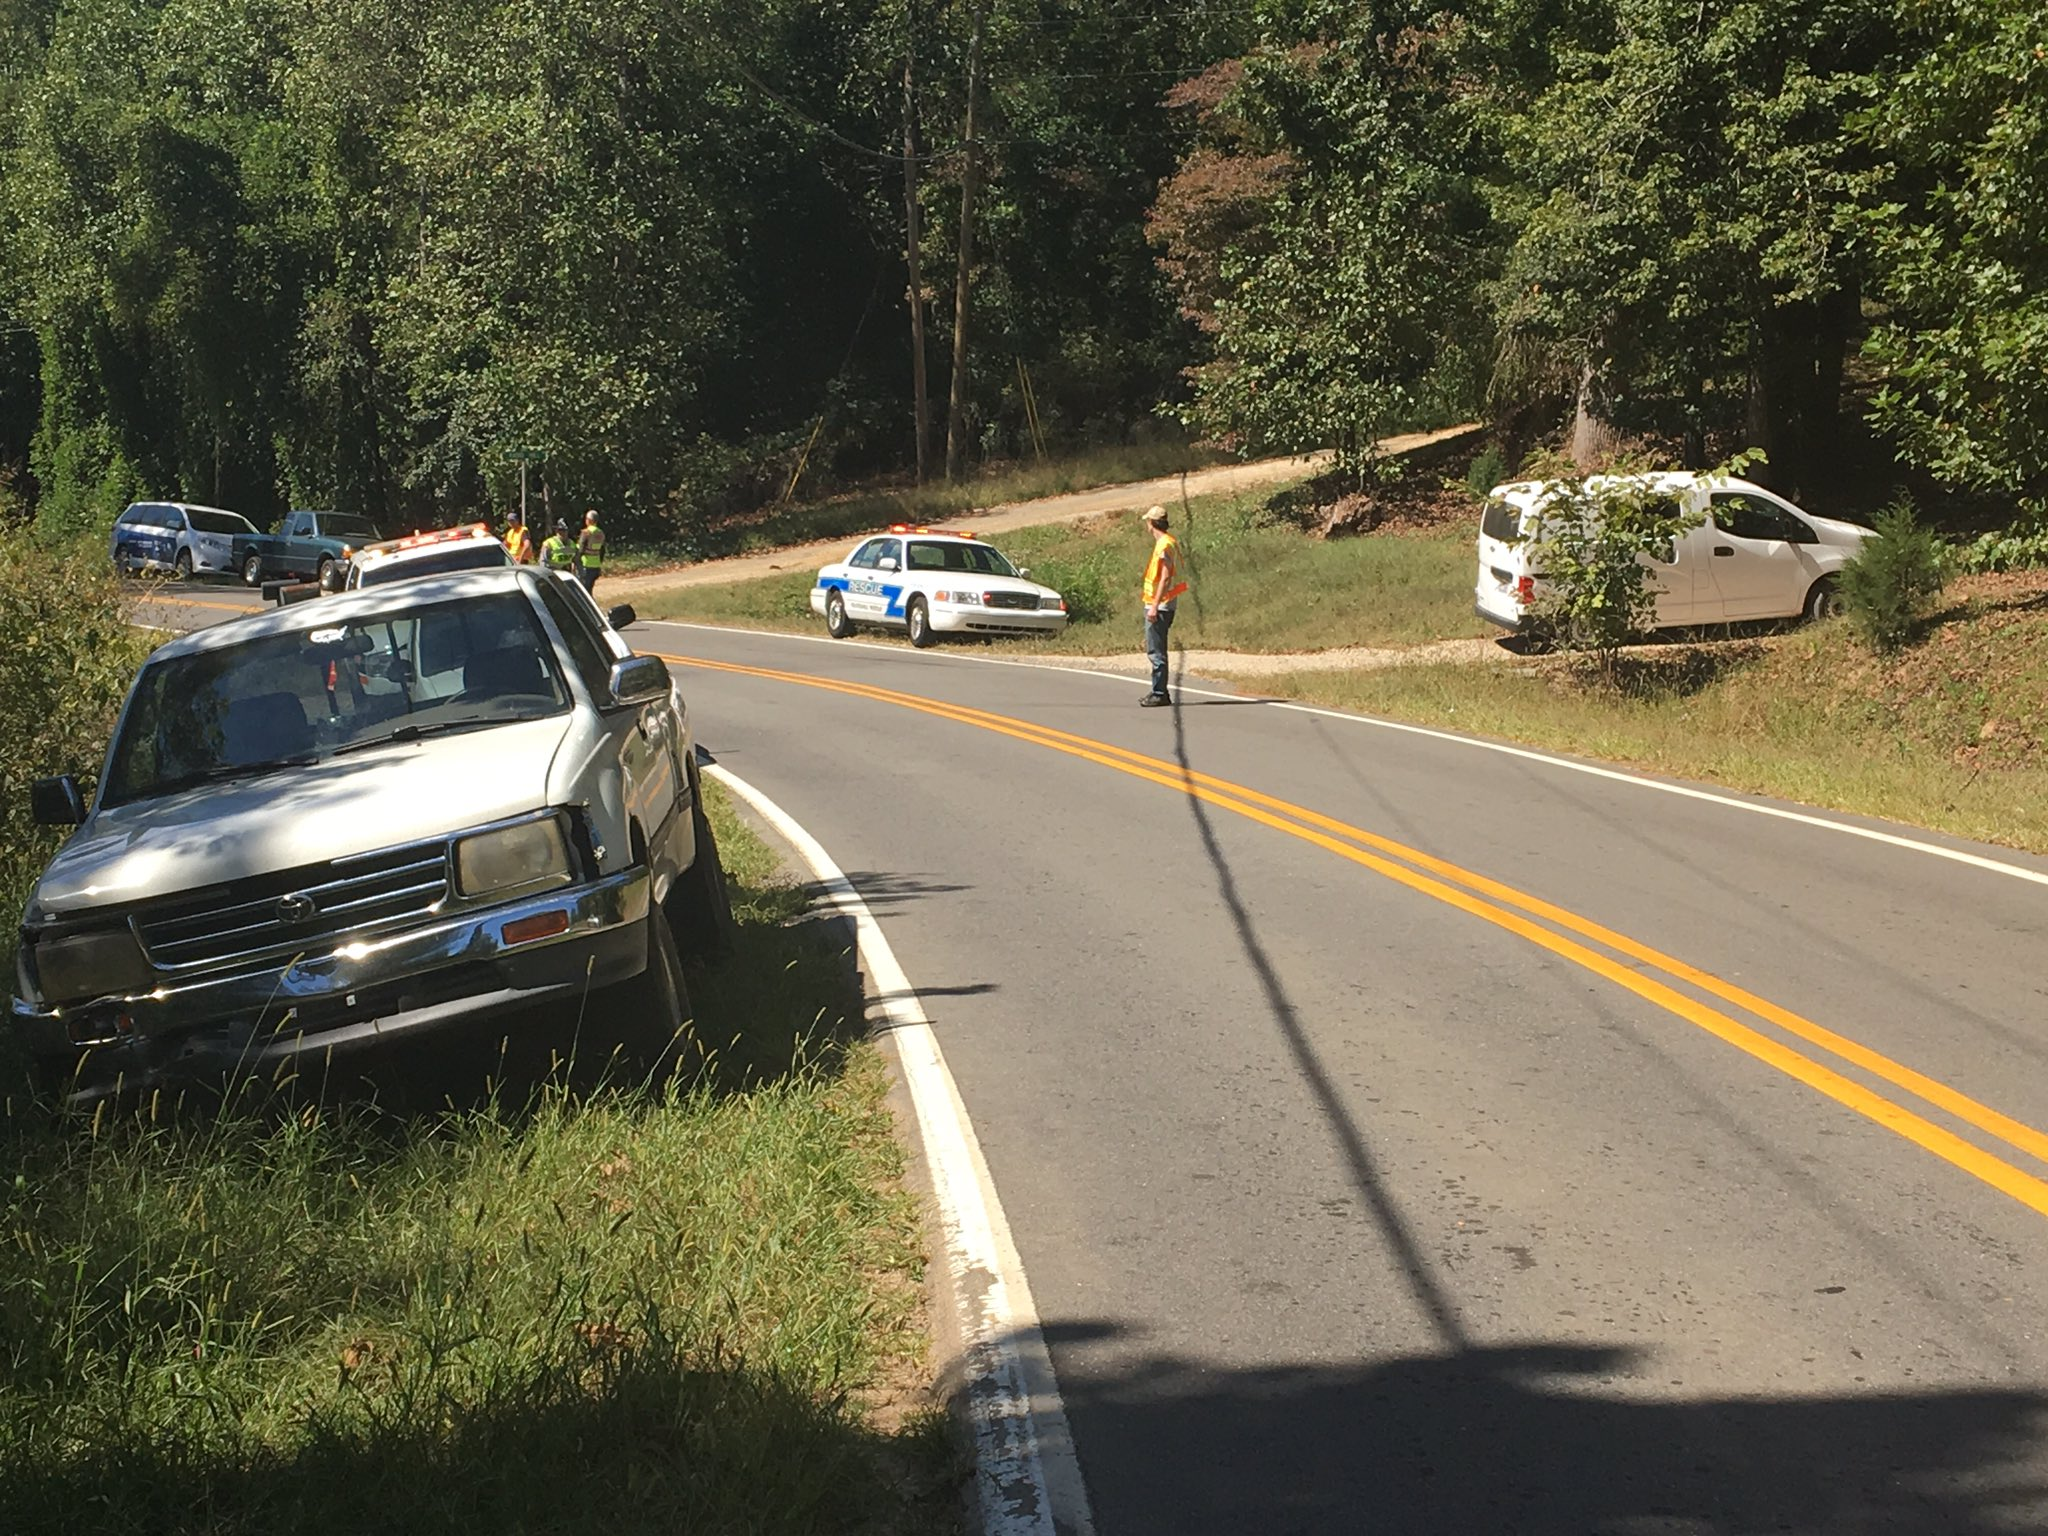 A motorcyclist was injured Monday in McDowell County. According to authorities, the man was driving carelessly up Deacon Drive in Marion. Photo: WLOS staff